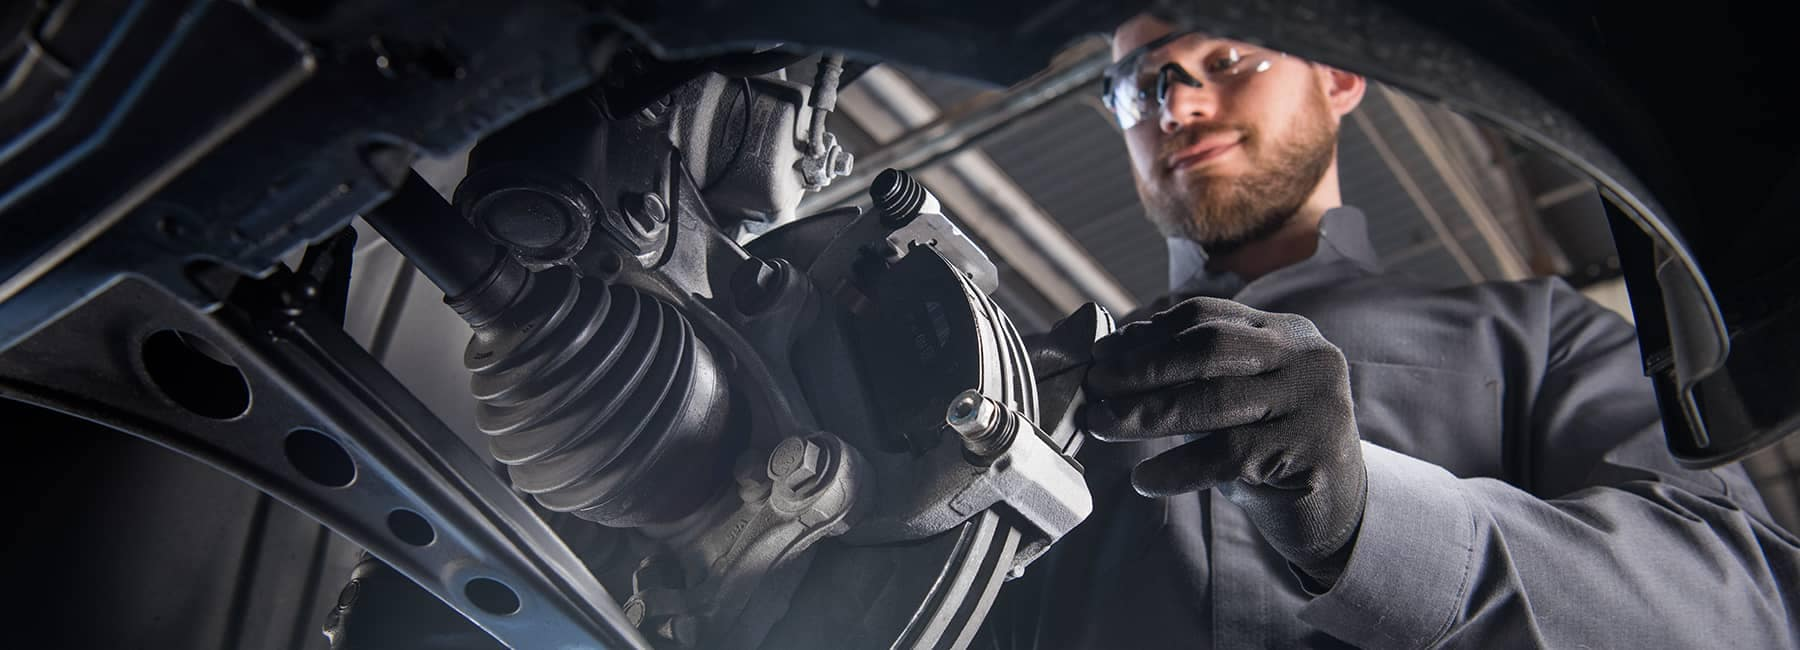 GM service technician with gloves working on rotors